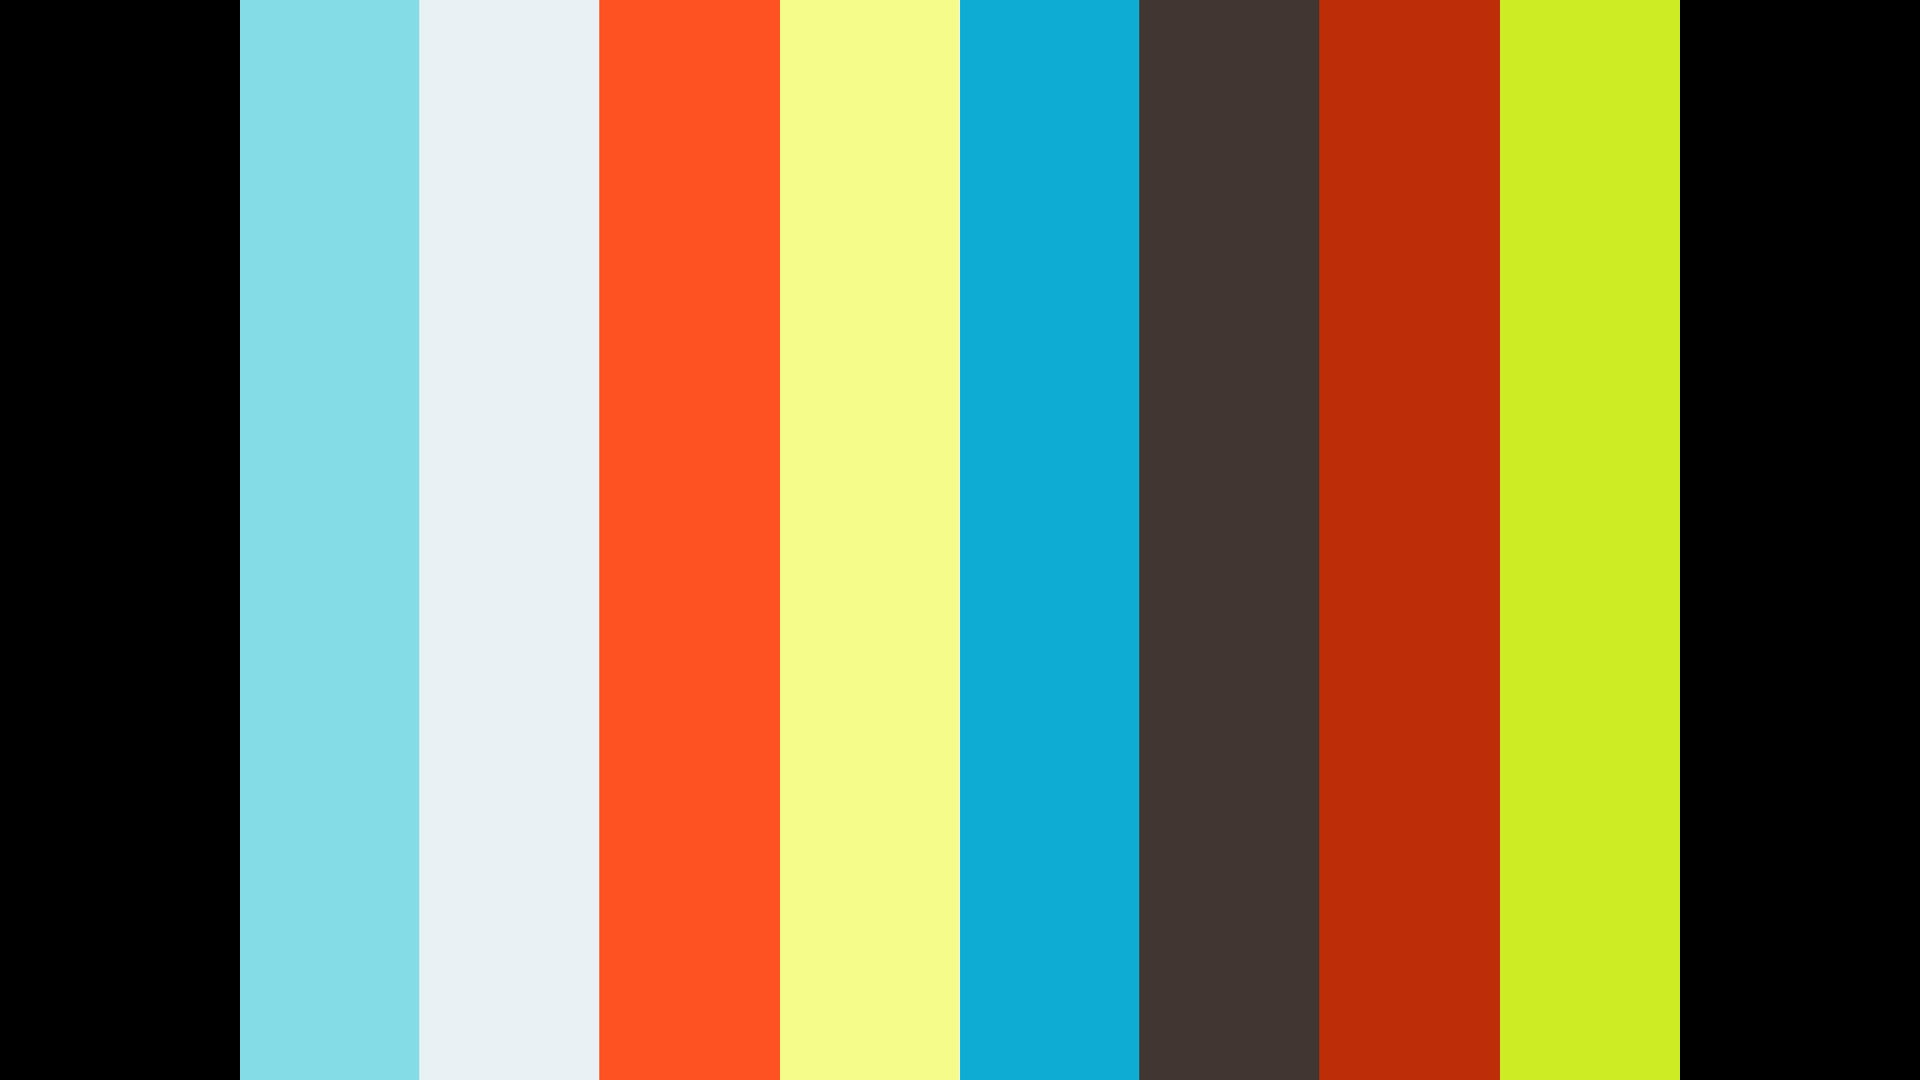 Synthesizing Urban Fabric